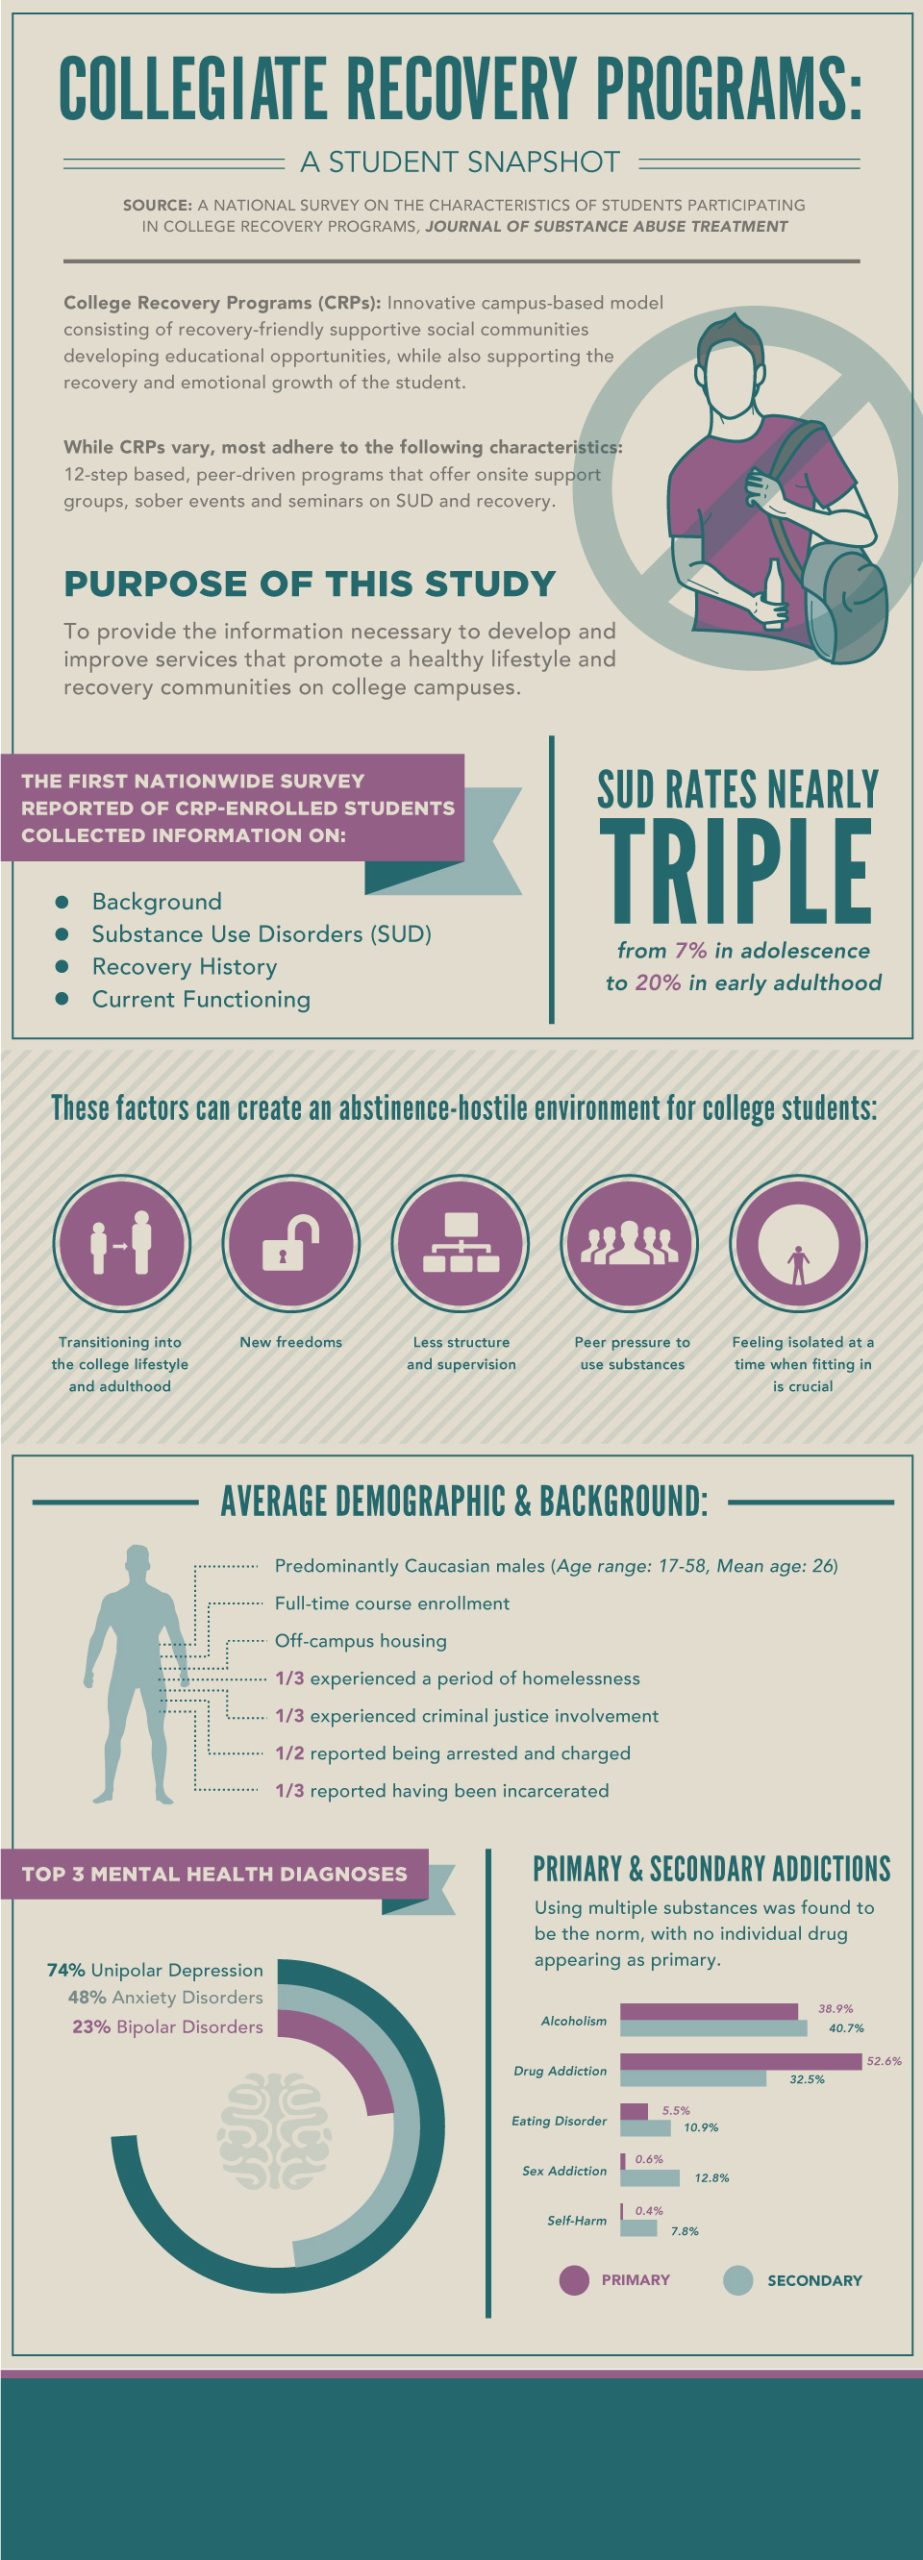 Infographic of collegiate recovery programs have a lot of benefits being on college campuses. here is a student snapshot of a study on the characteristics of students participating in college recovery programs. crp's are an innovative campus-based model consisting of recovery-friendly supportive social communities developing educational opportunities, while also supporting the recovery and emotional growth of the student.